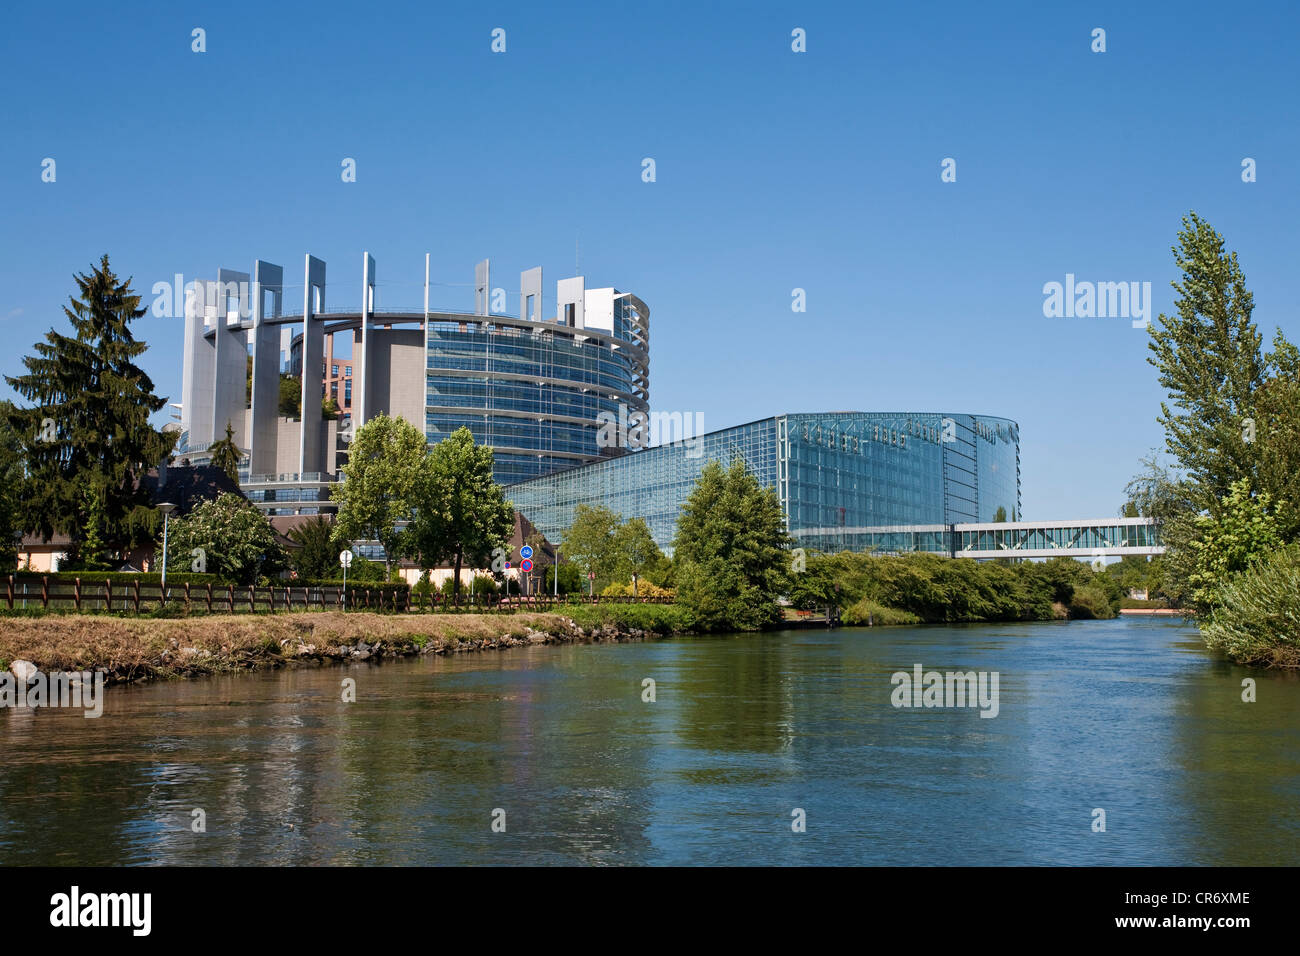 European Parliament on the River Ill, Strasbourg, Alsace, France, Europe - Stock Image